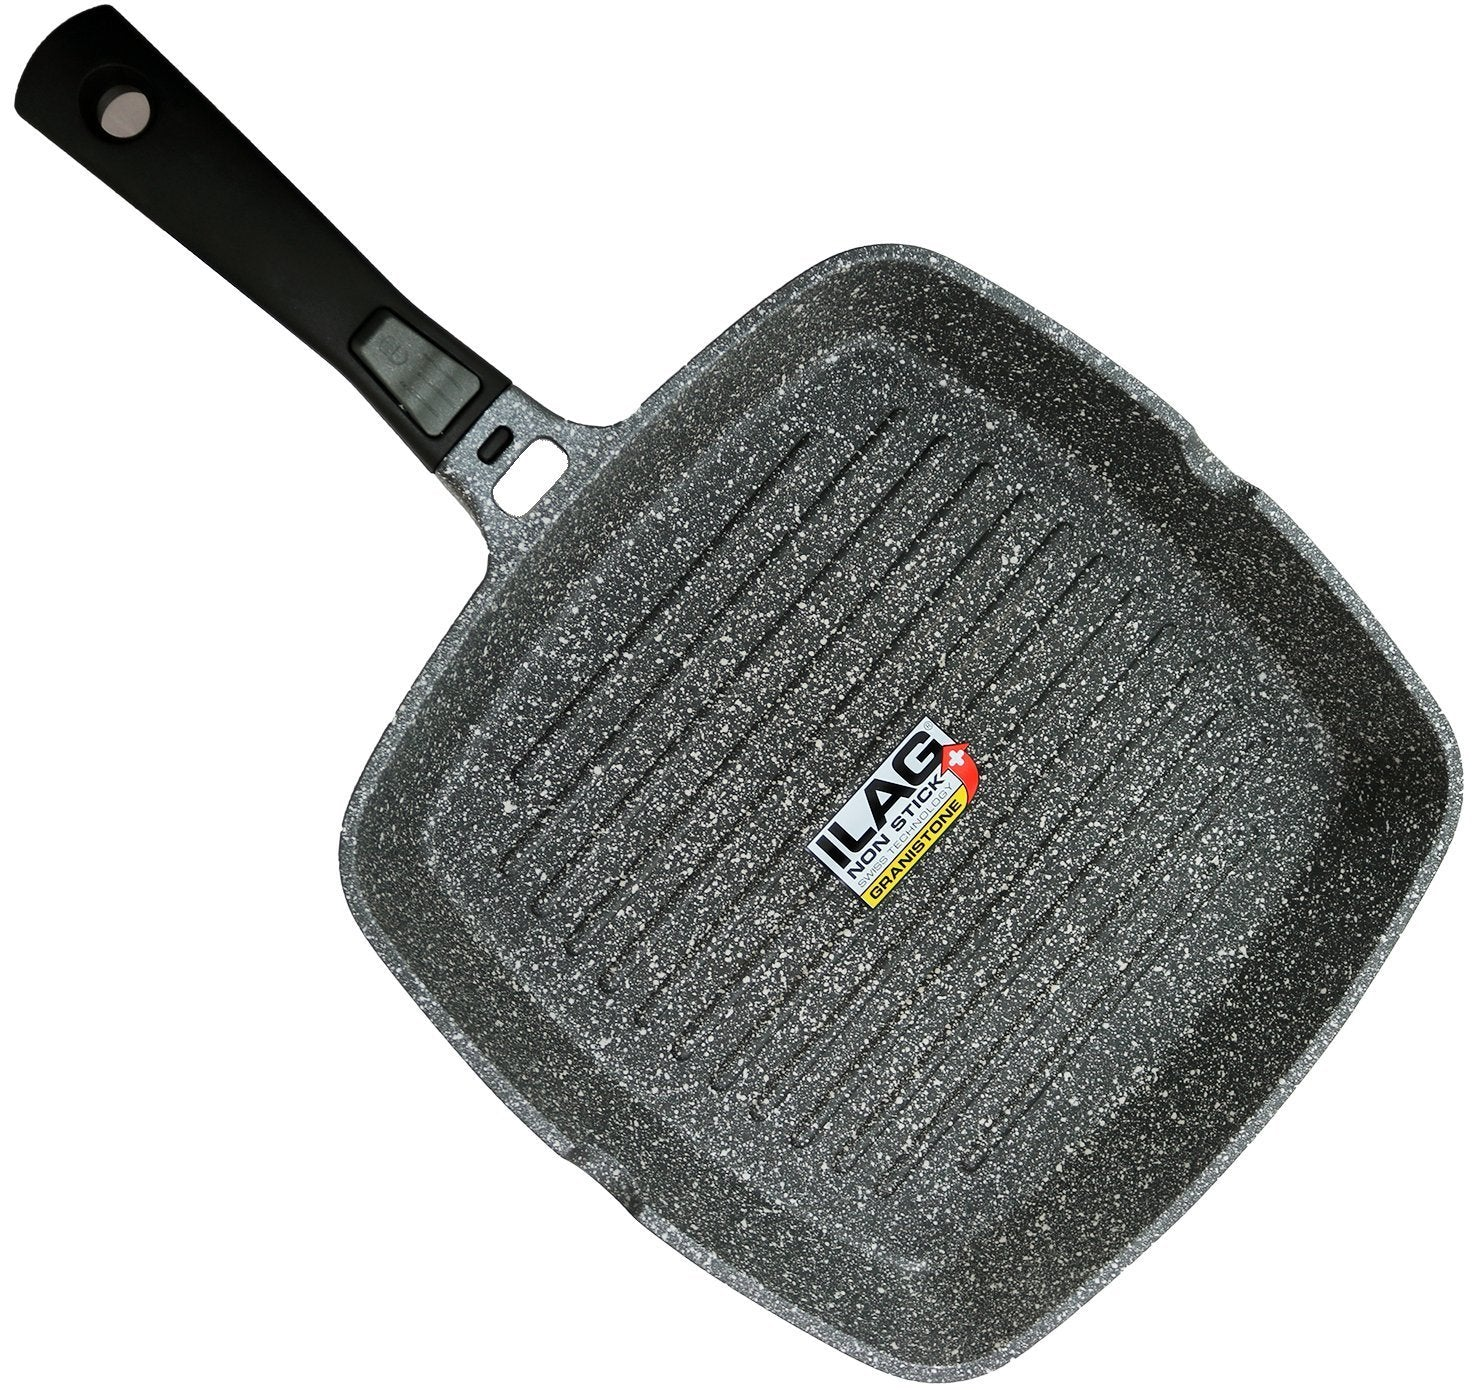 Coninx Grill Pan With Detachable Handle | 100% PTFE and PFOA Free